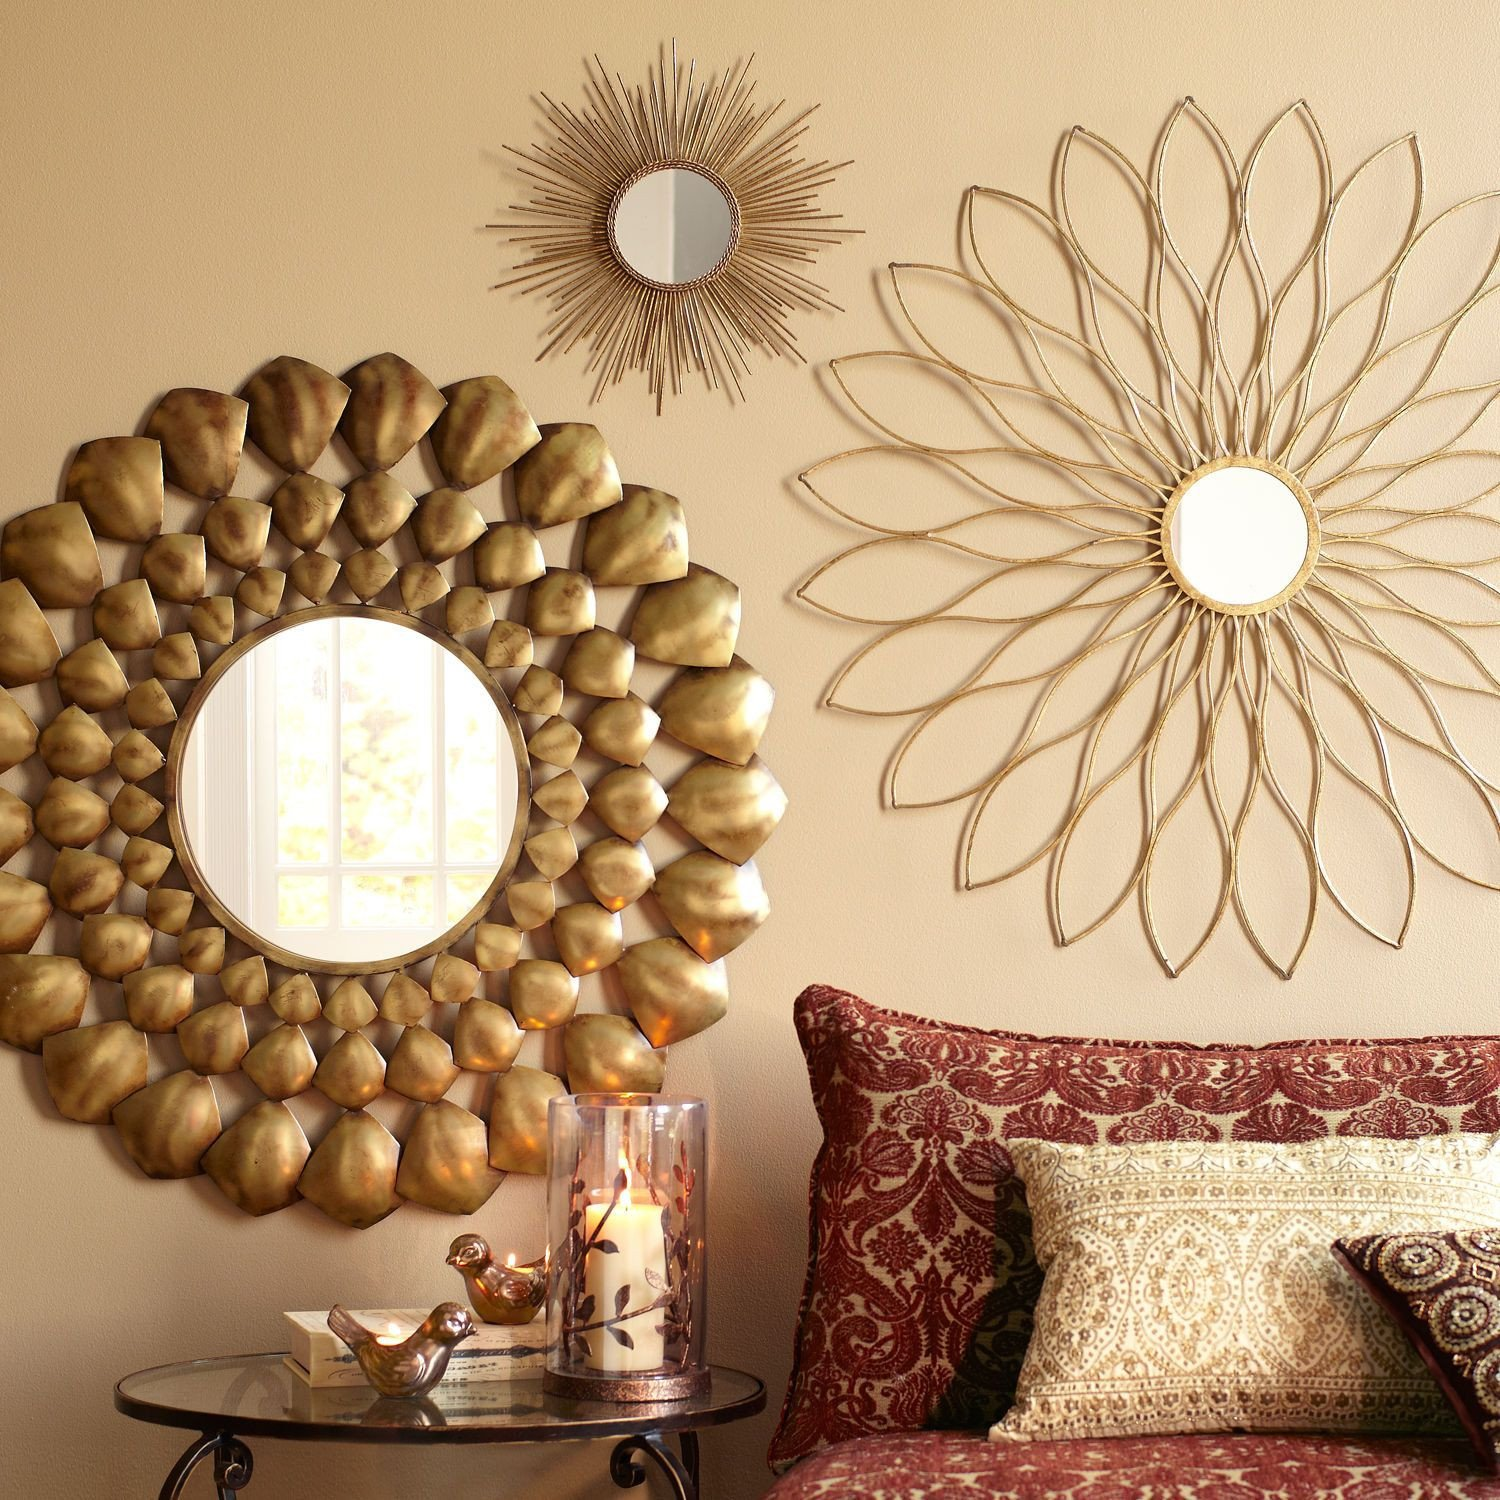 Mirrors for Bedroom Walls Awesome Petite Gold Burst Round Mirror